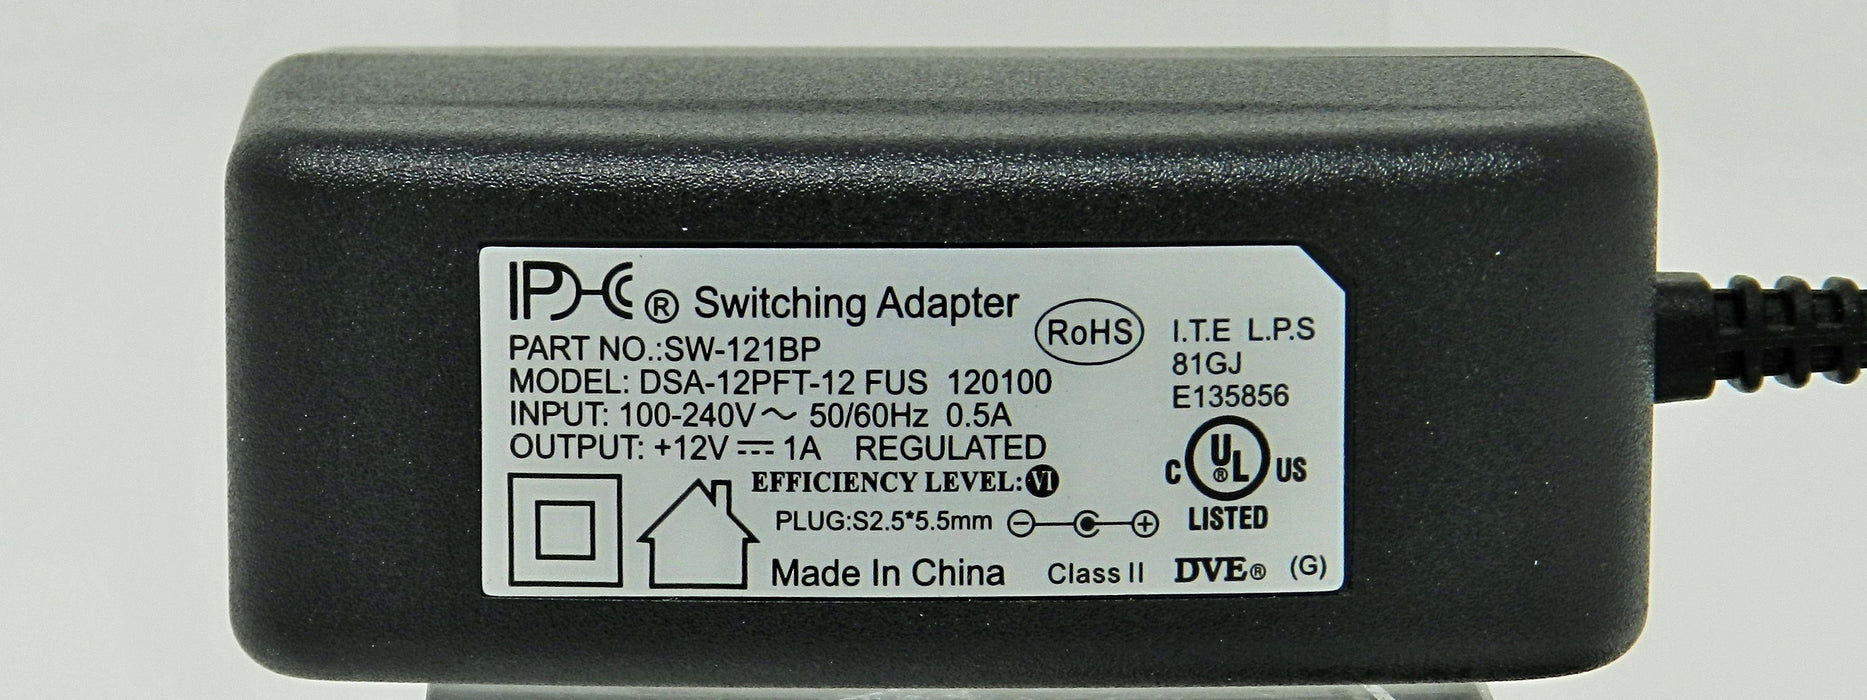 AC-DC Switching Regulated Power Supply 12VDC @ 1000mA; 2.5 x 5.5mm (+) center polarity; Part # SW-121BP